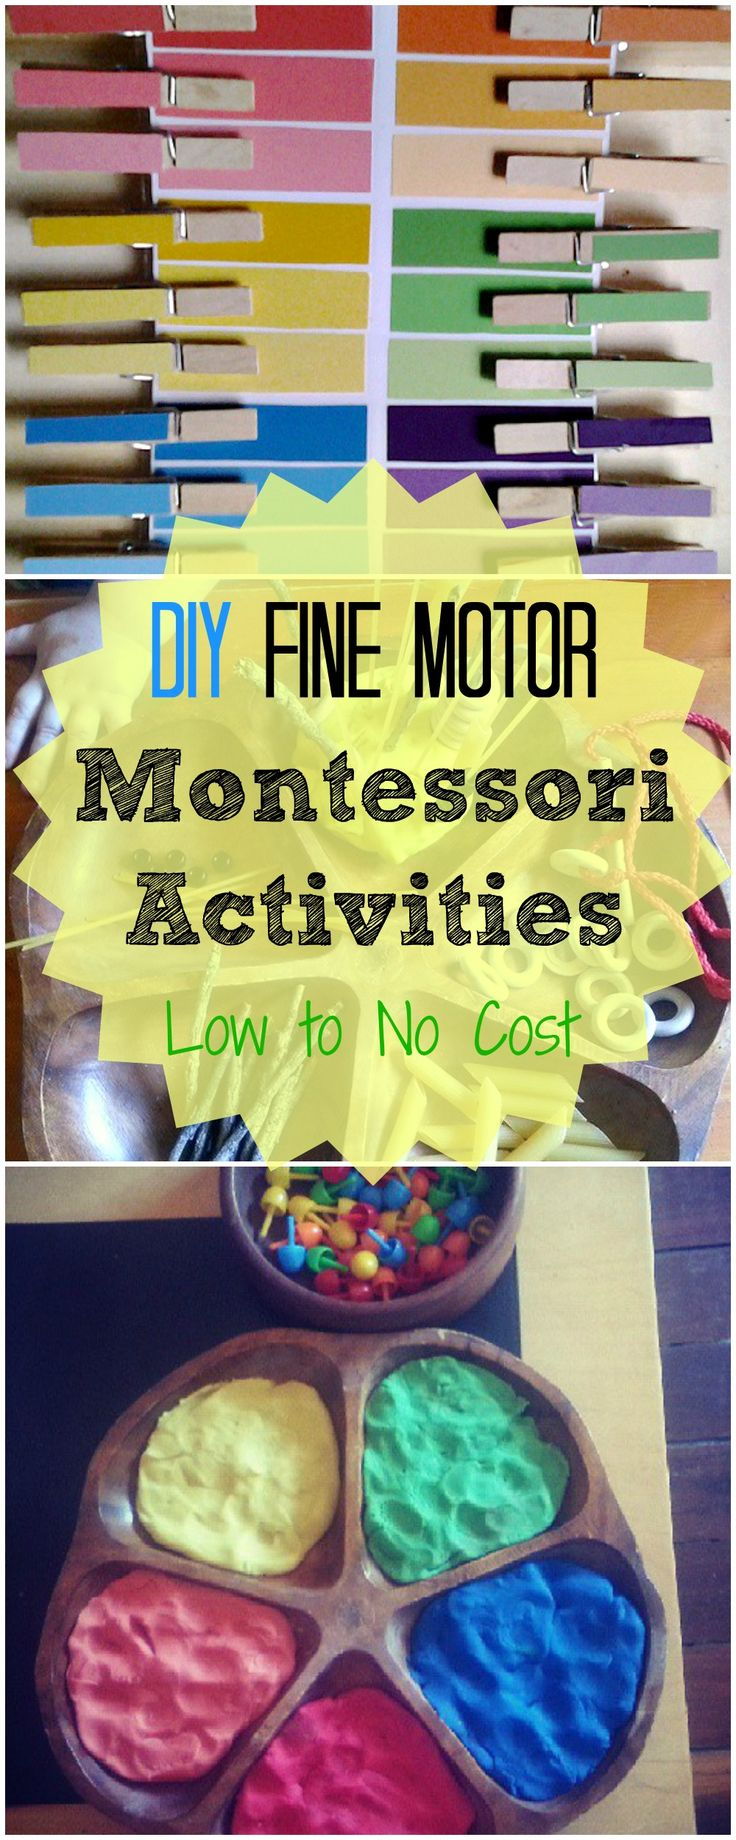 fijne motoriek op Montessori-wijze  | DIY Montessori Fine Motor Activities | Low to No Cost